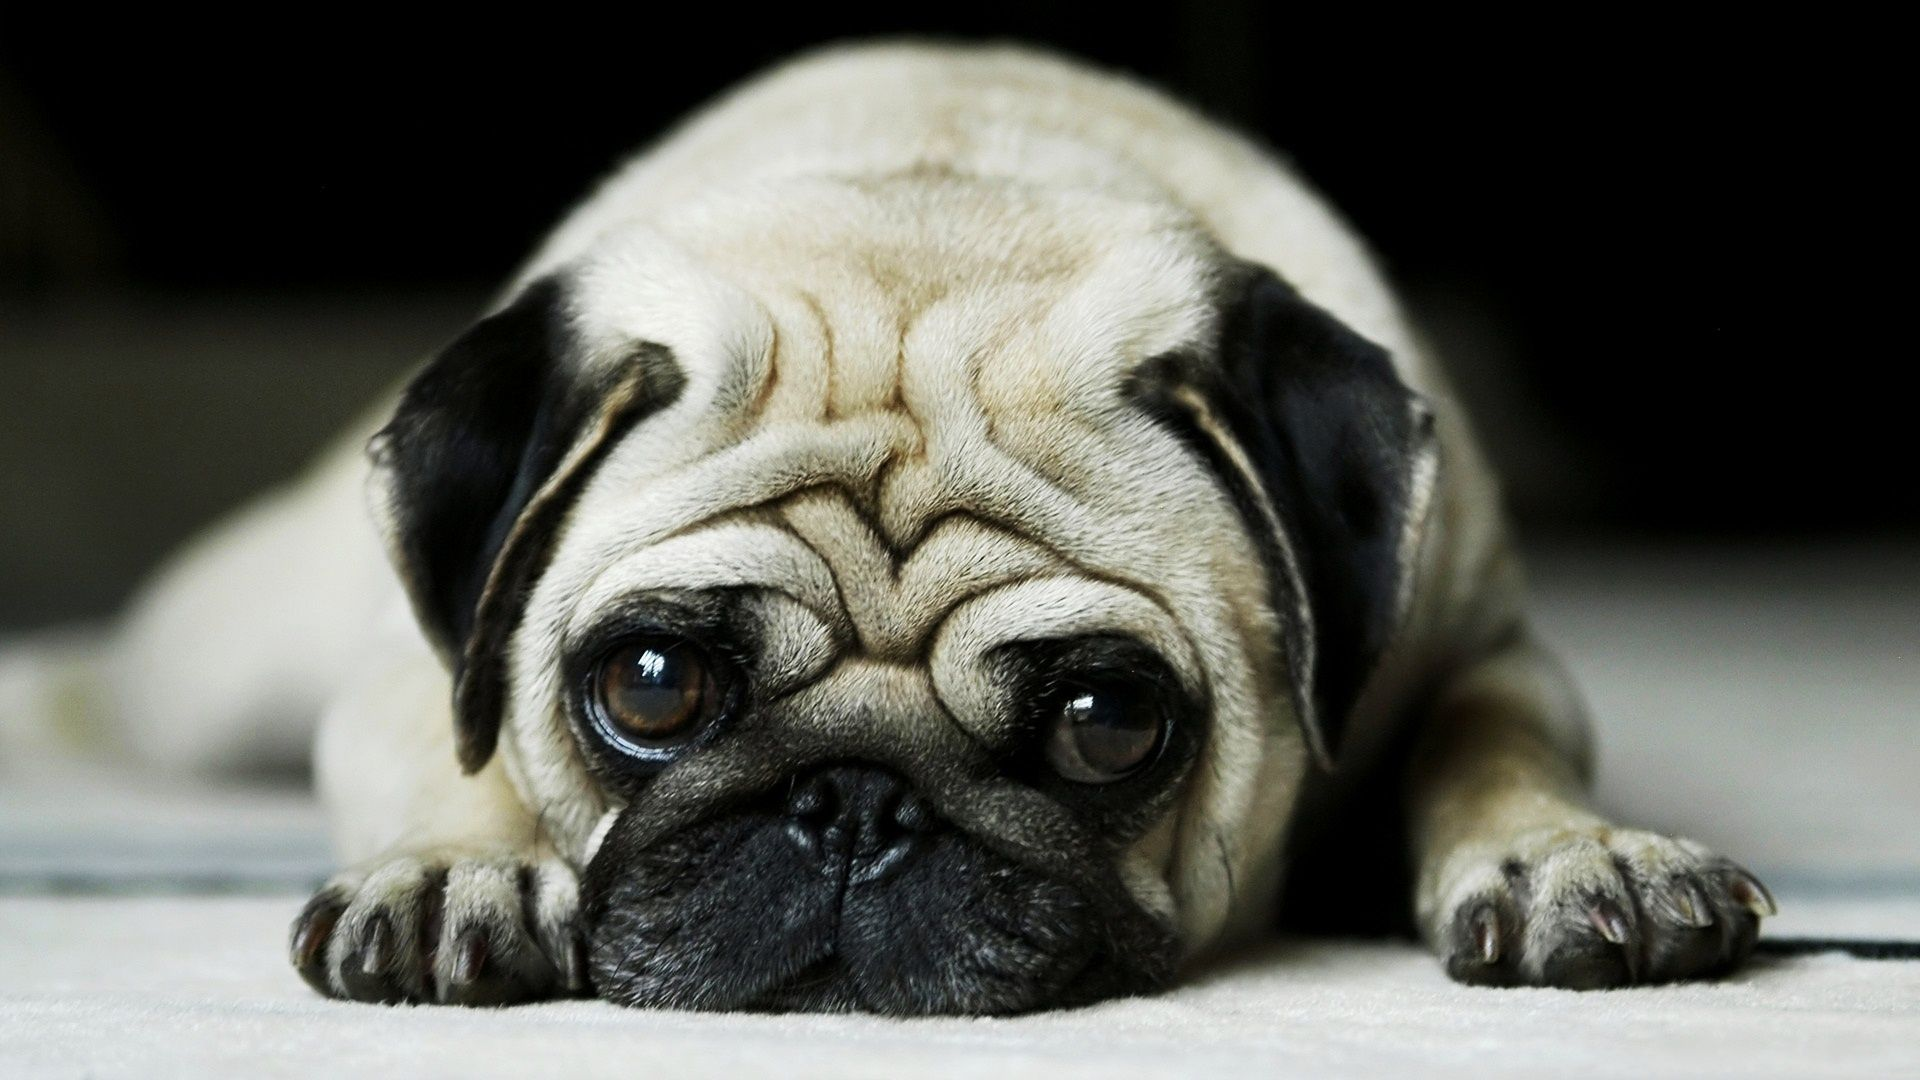 Pug Animal Wallpaper Desktop Backgrounds For Free Hd Wall Art